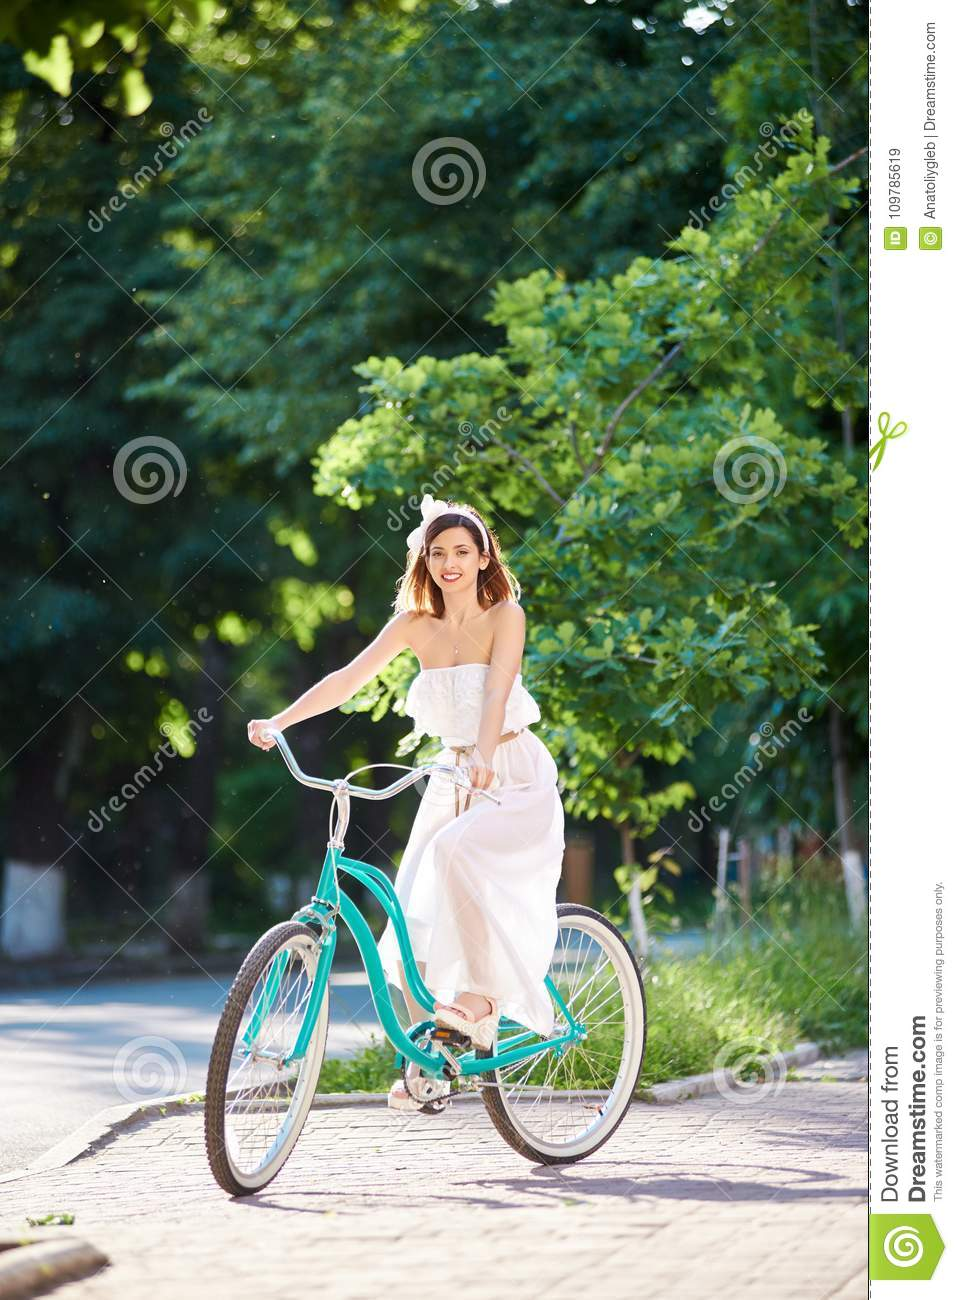 Beautiful woman in white dress riding vintage blue bike in a park.